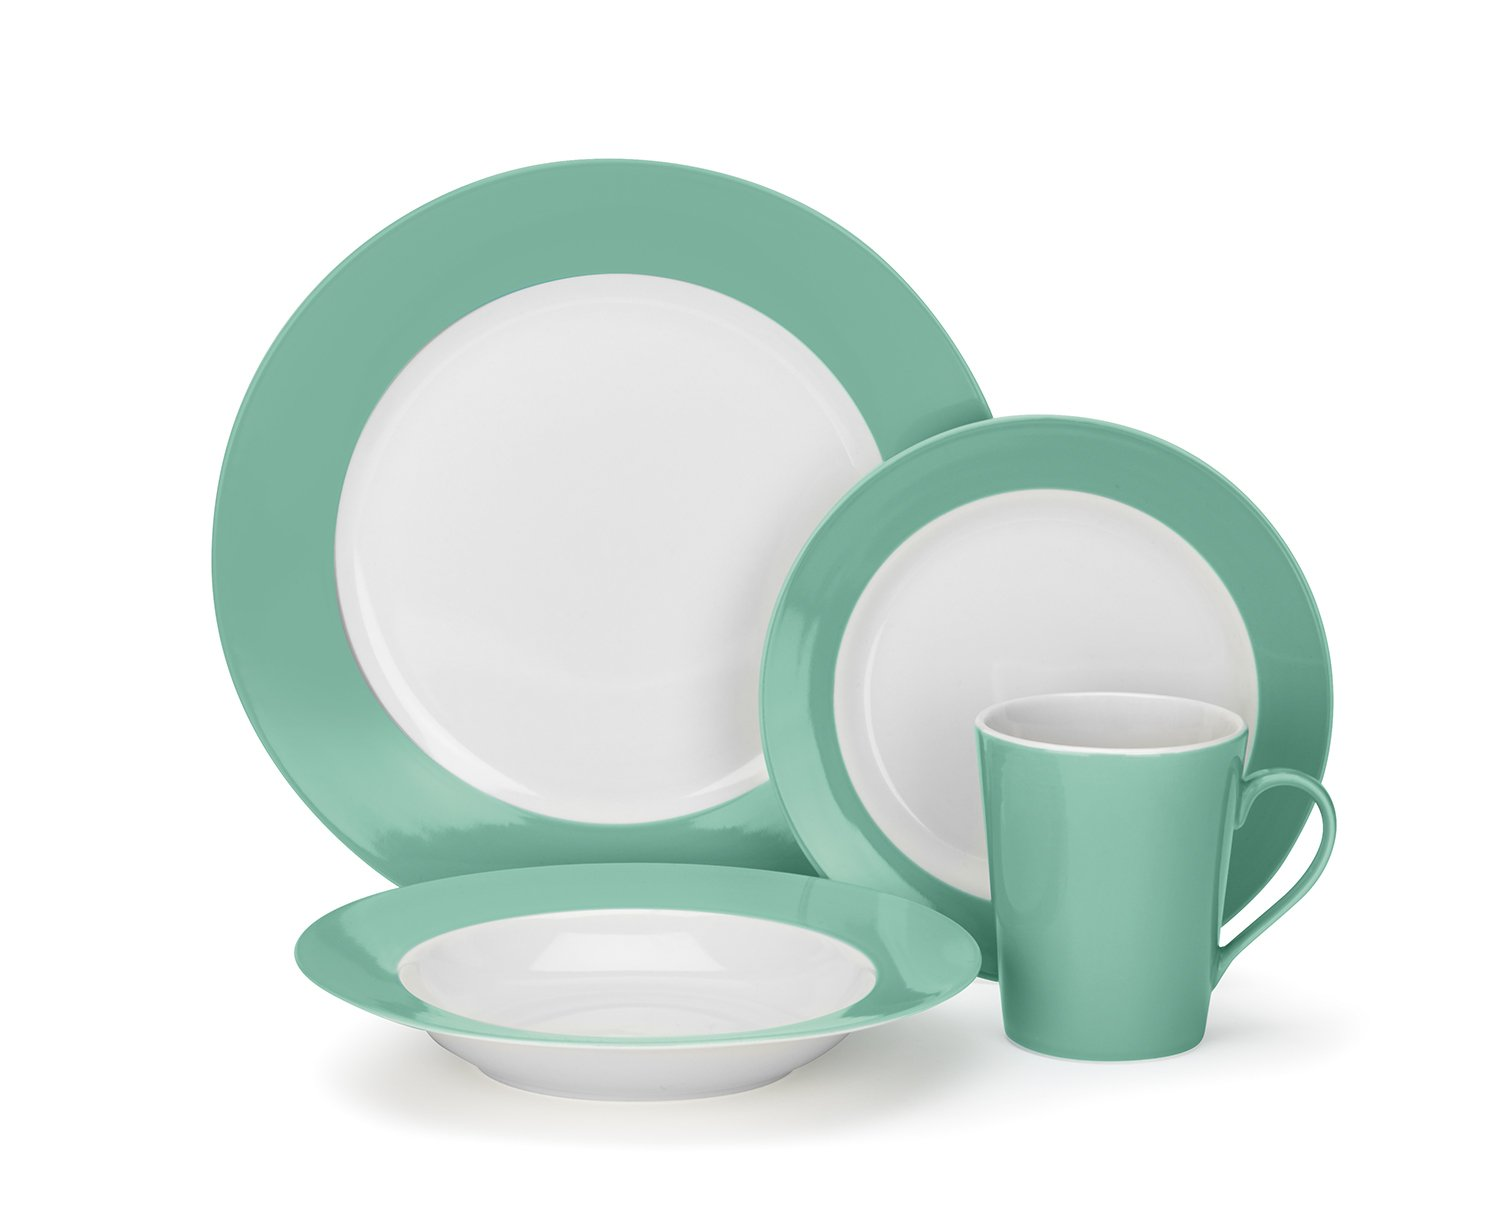 amazoncom  cuisinart reynes collection piece porcelain  - amazoncom  cuisinart reynes collection piece porcelain dinnerware setserveware accessories